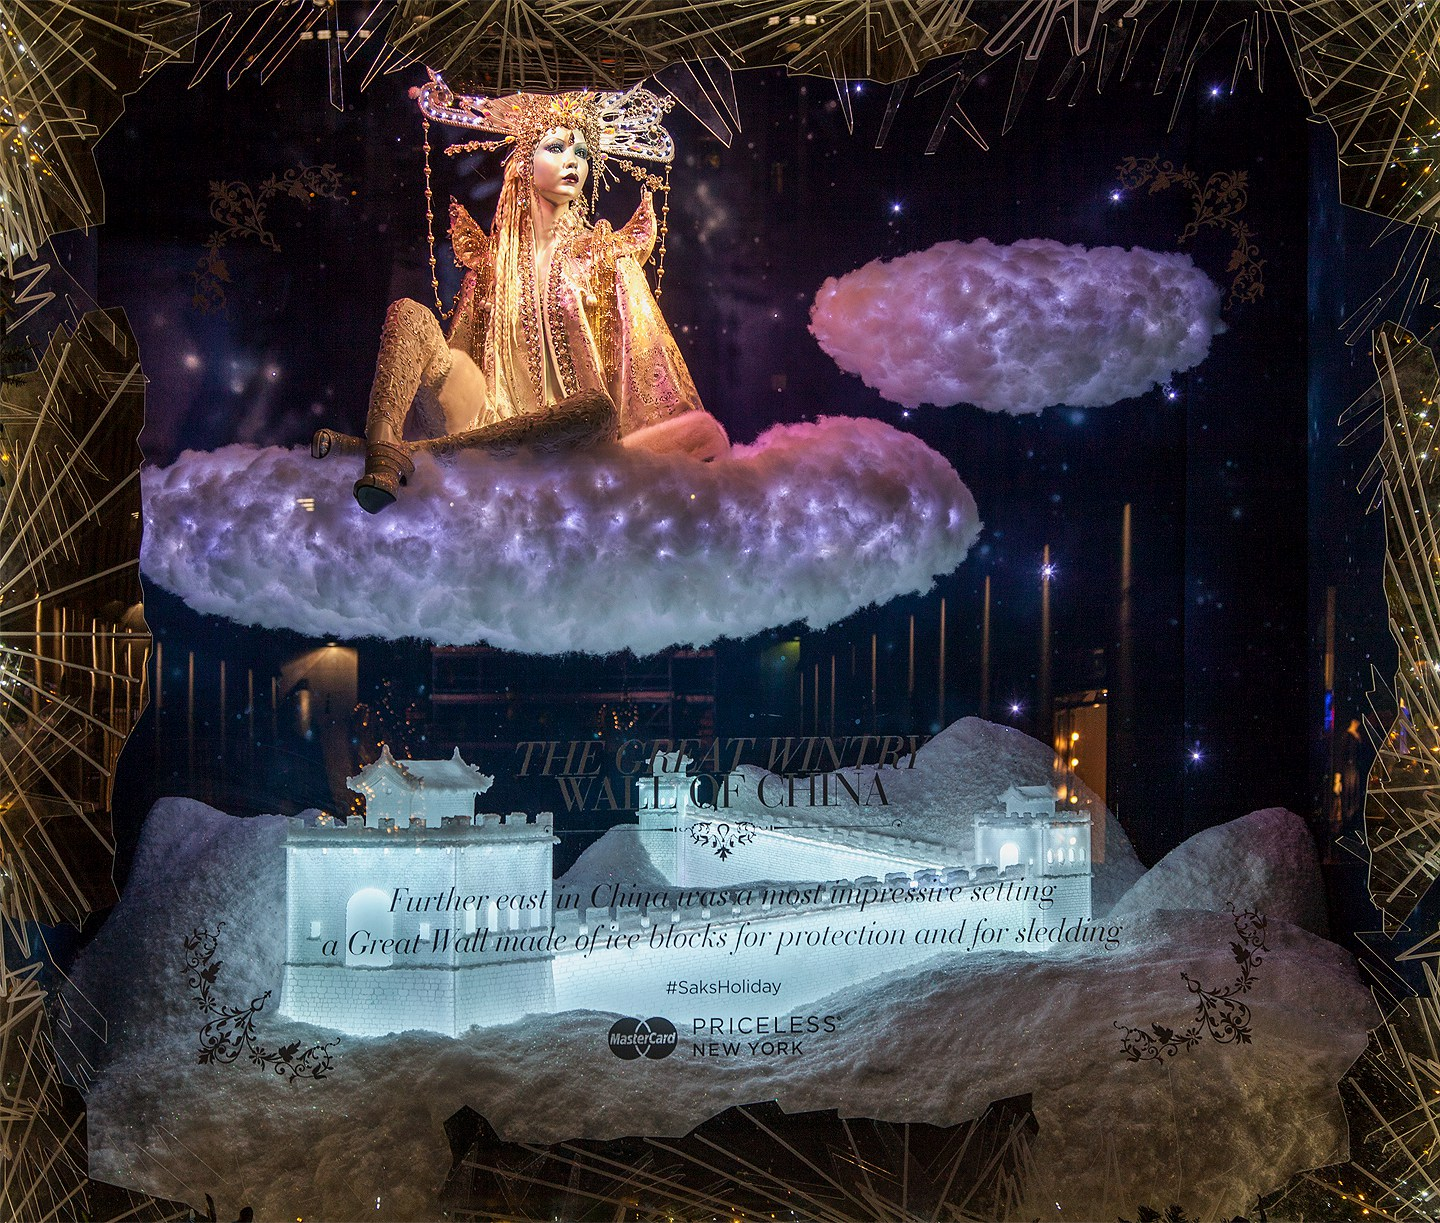 Saks Fifth Avenue Holiday Windows 2015: The Great Wall of China